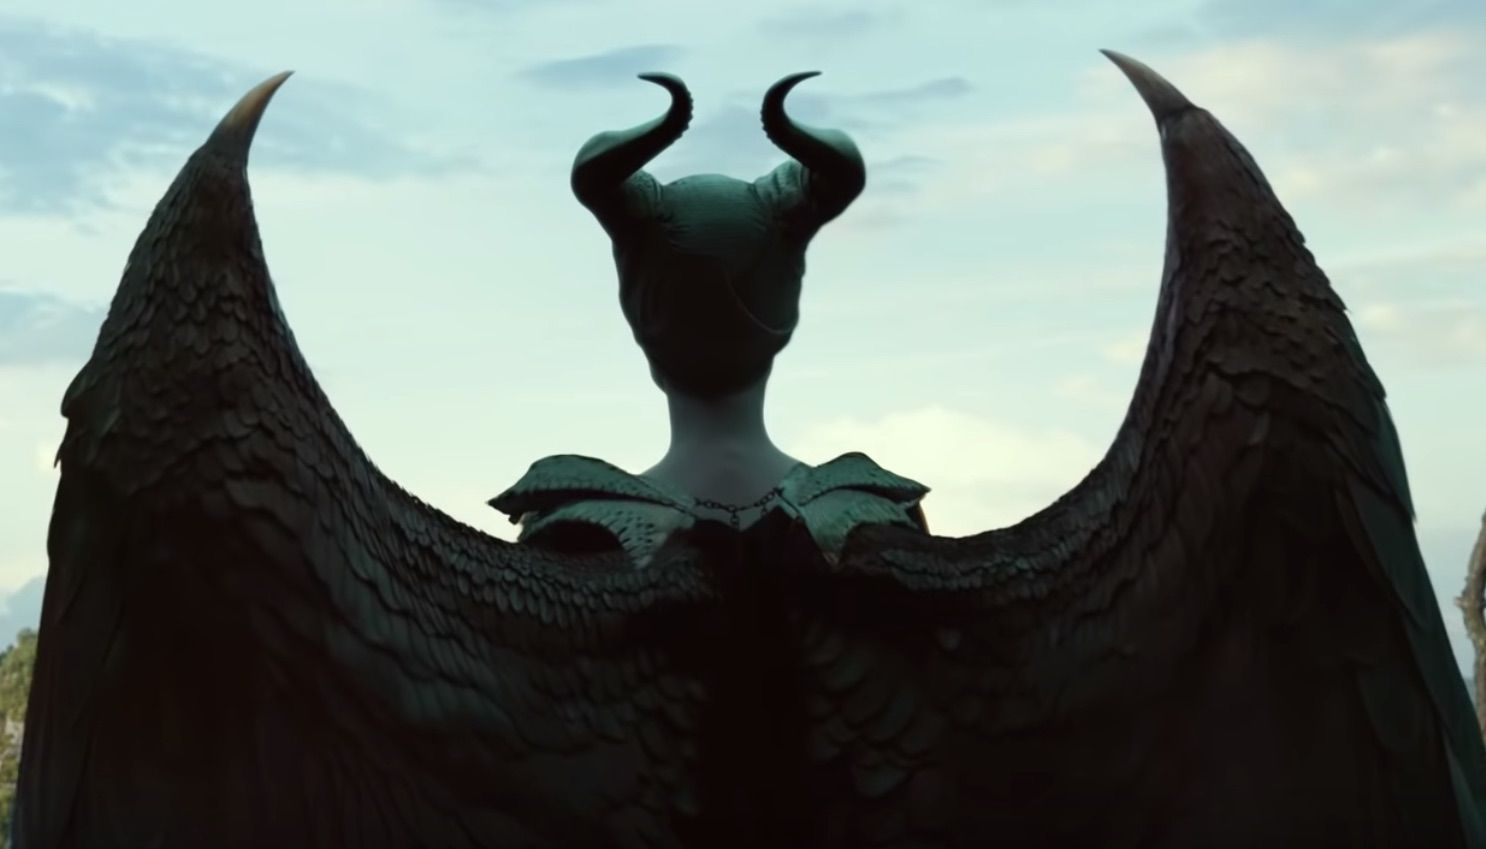 Angelina Jolie's Maleficent is more wicked than ever in Disney's first trailer for sequel Mistress of Evil